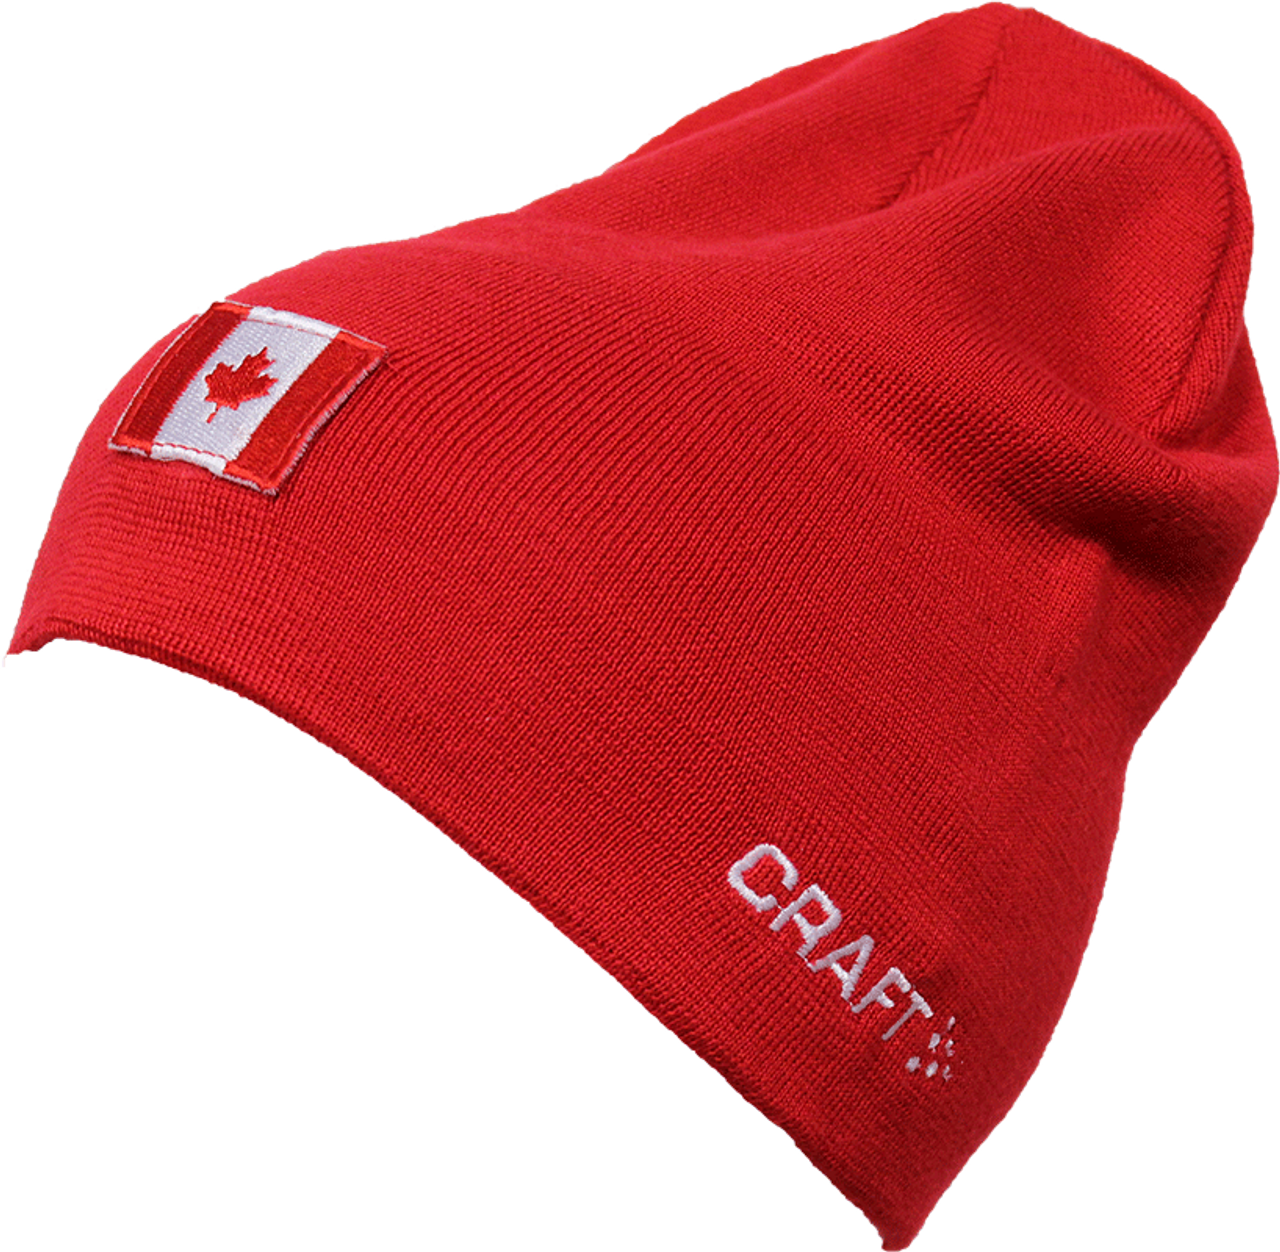 15a08e8d1f5 Craft Race Hat with Flags - Gear West Ski and Run